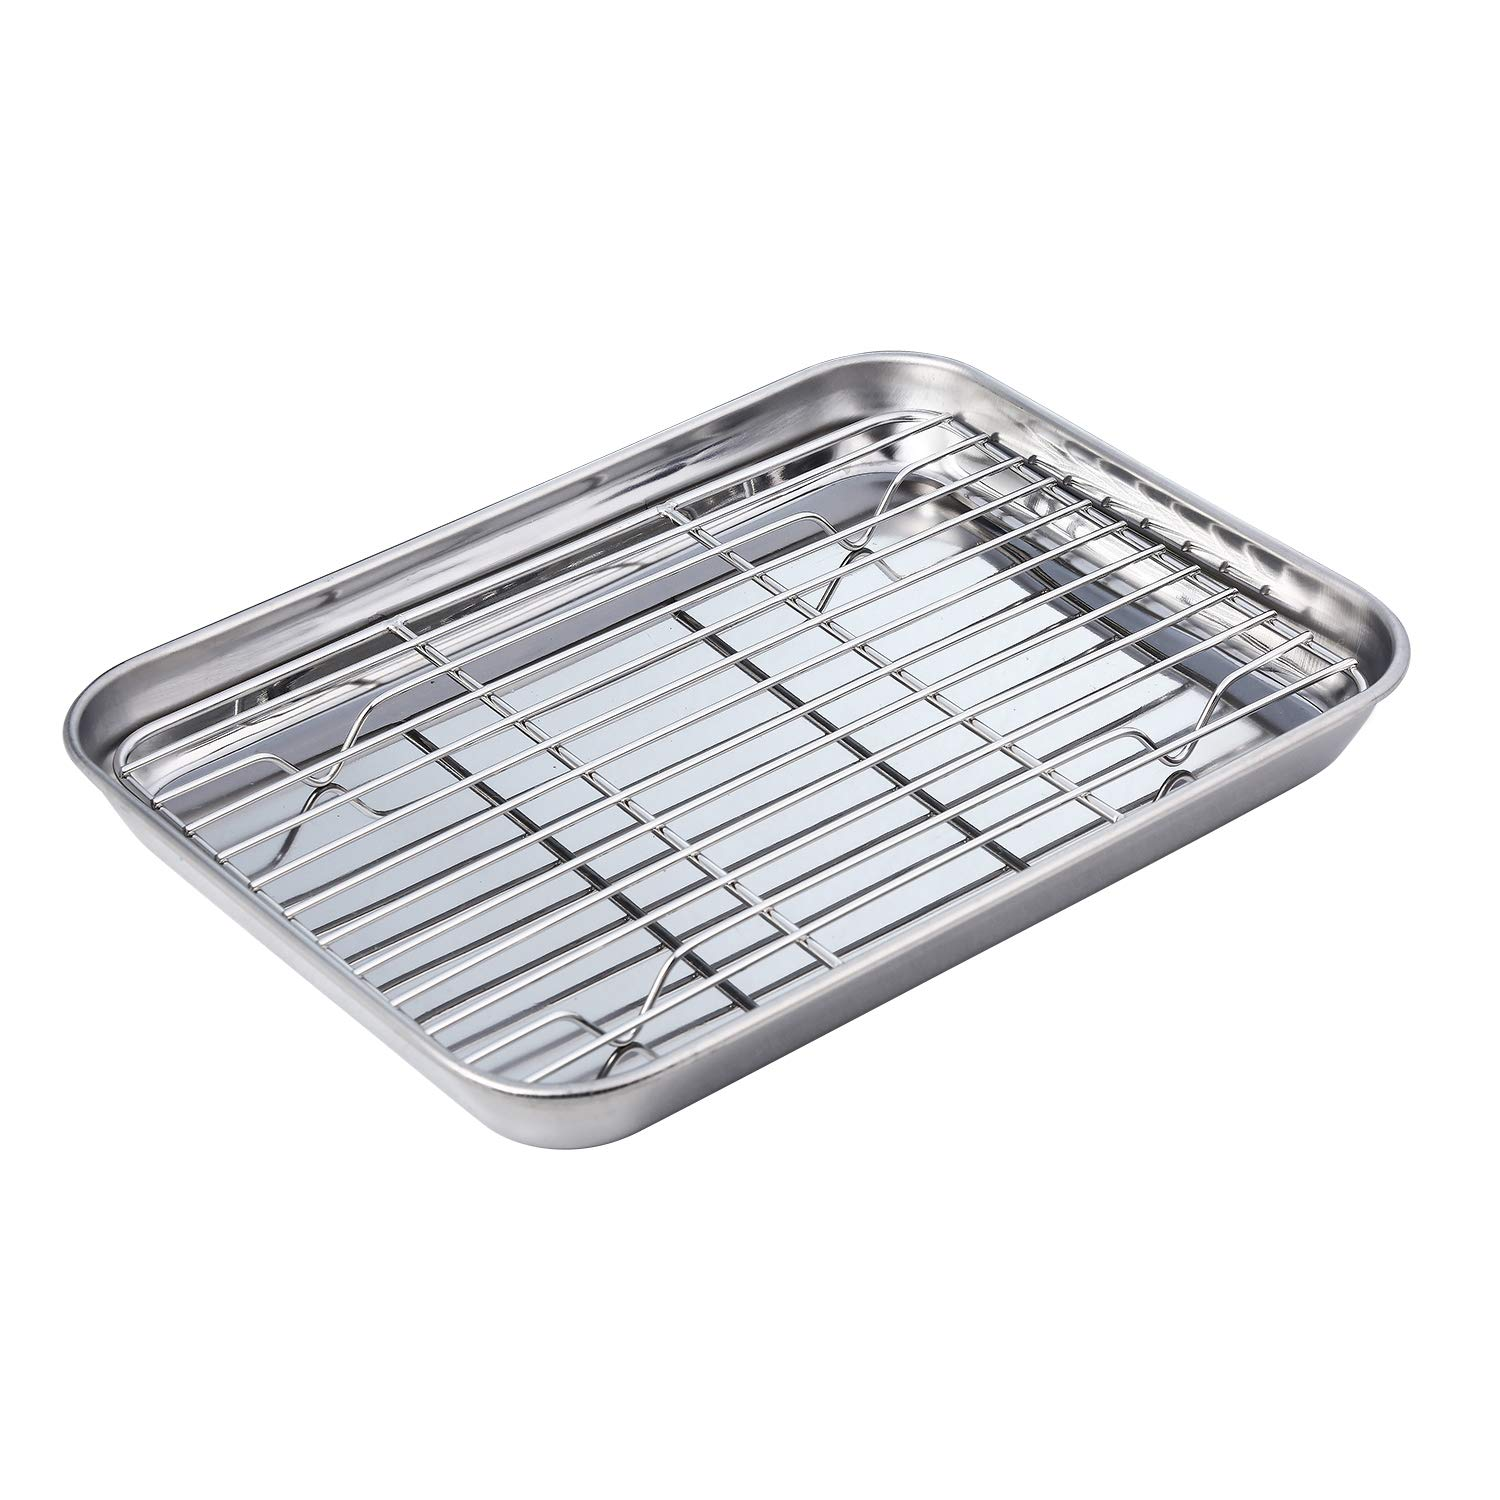 "WEZVIX Stainless Steel Baking Sheet with Nonstick Cooling Rack Set 10 3/8"" × 8 1/16"" × 1"" Silver"